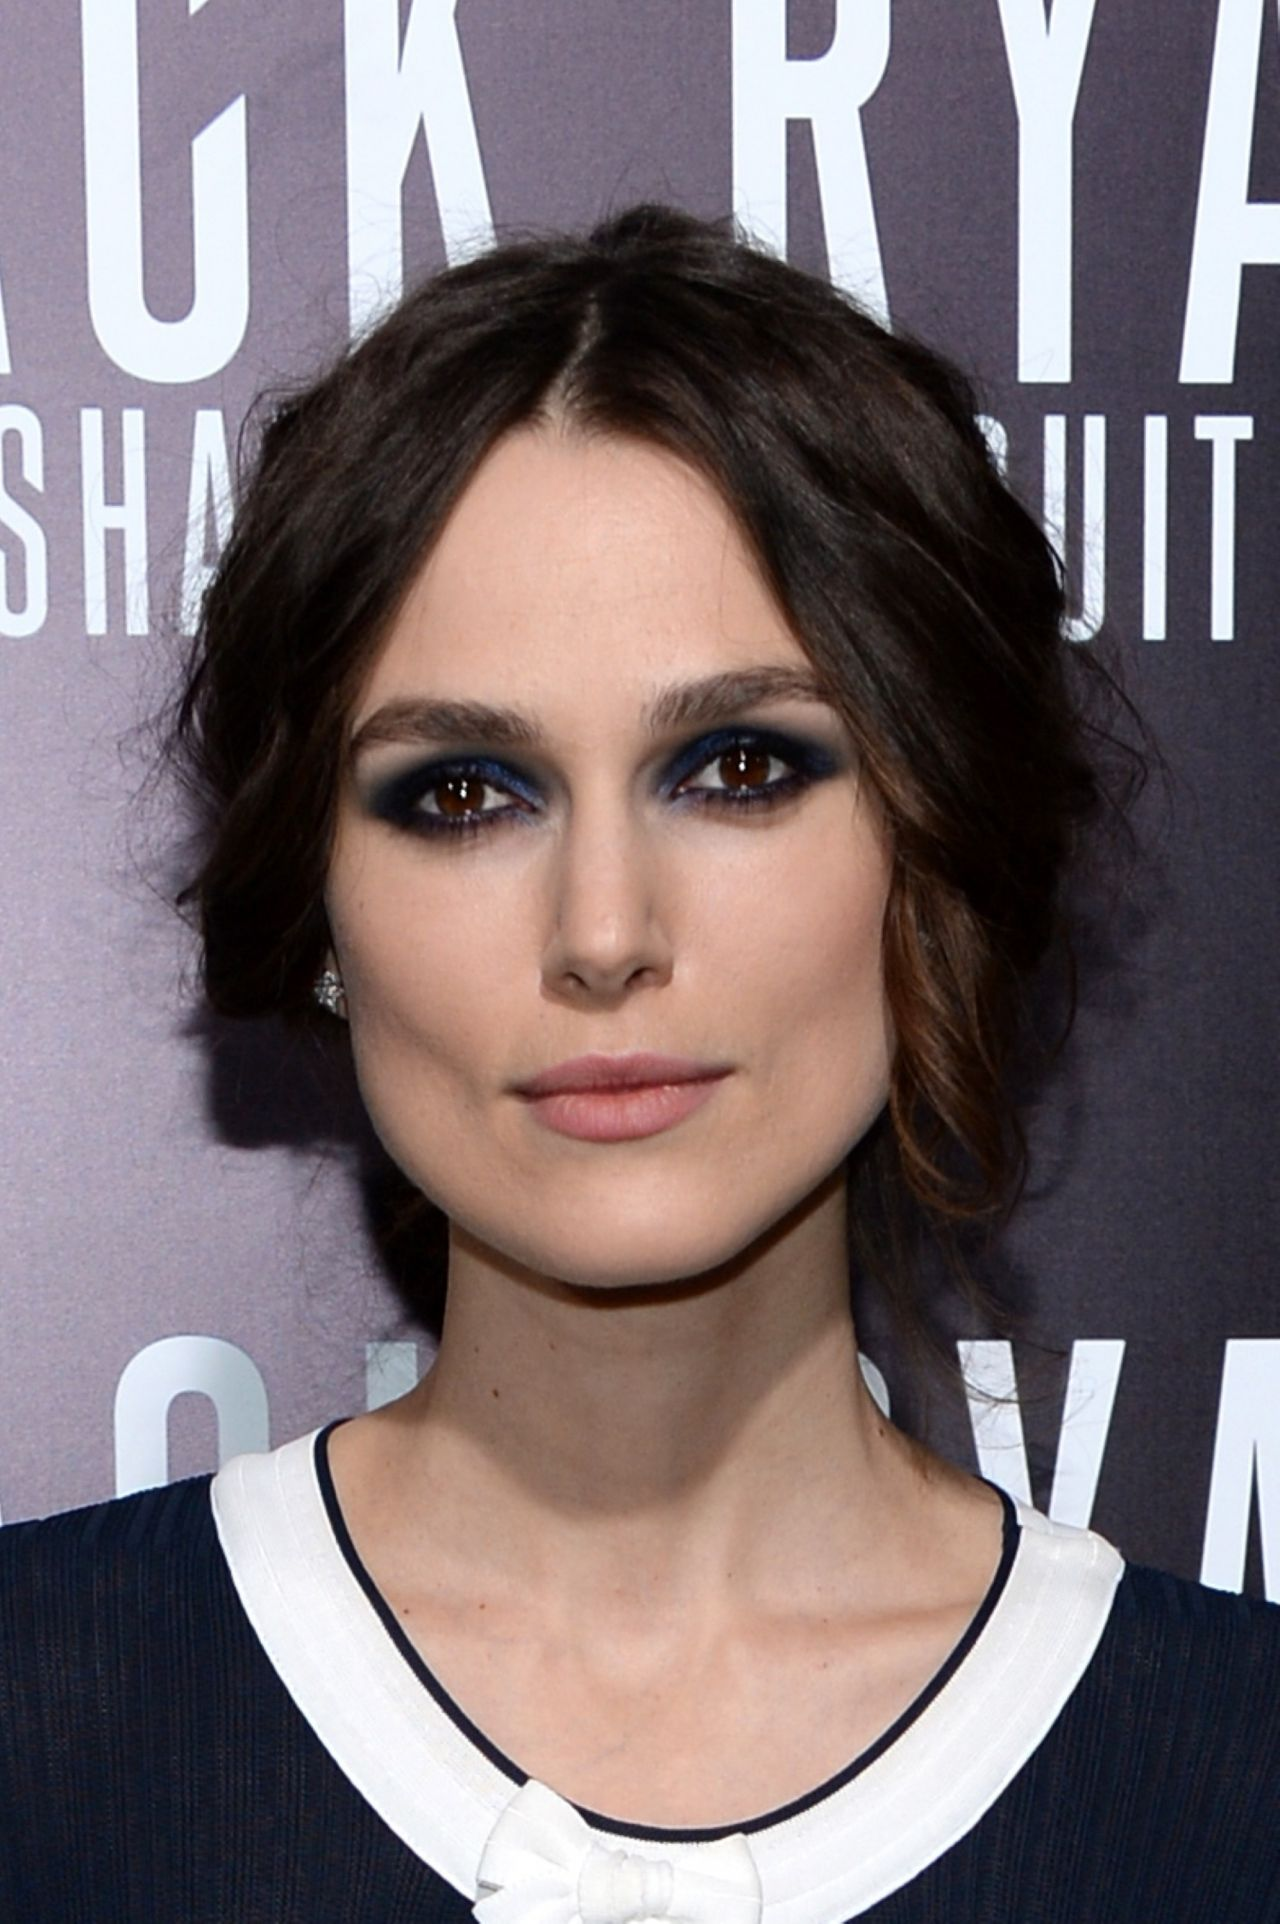 Keira Knightley at JACK RYAN: SHADOW RECRUIT Movie Premiere in Hollywood, January 2014